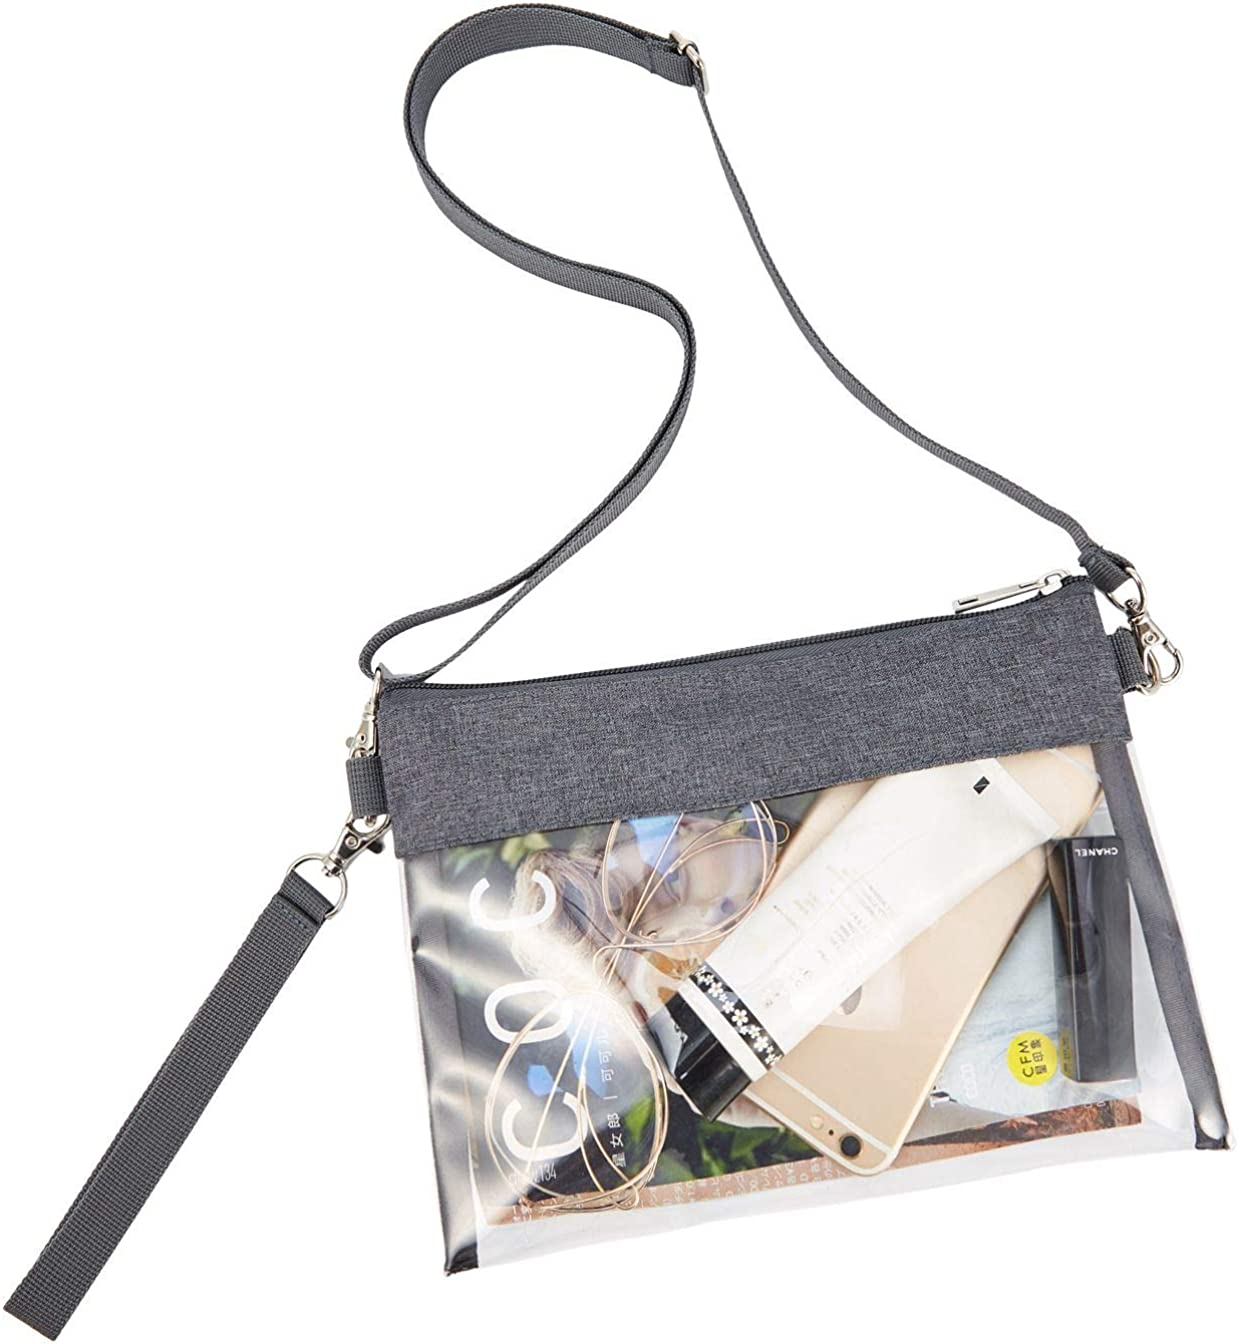 GreenPine Clear Crossbody Purse Bag - NFL,NCAA Stadium Approved Clear Tote Bag with Adjustable Shoulder Strap (Grey)